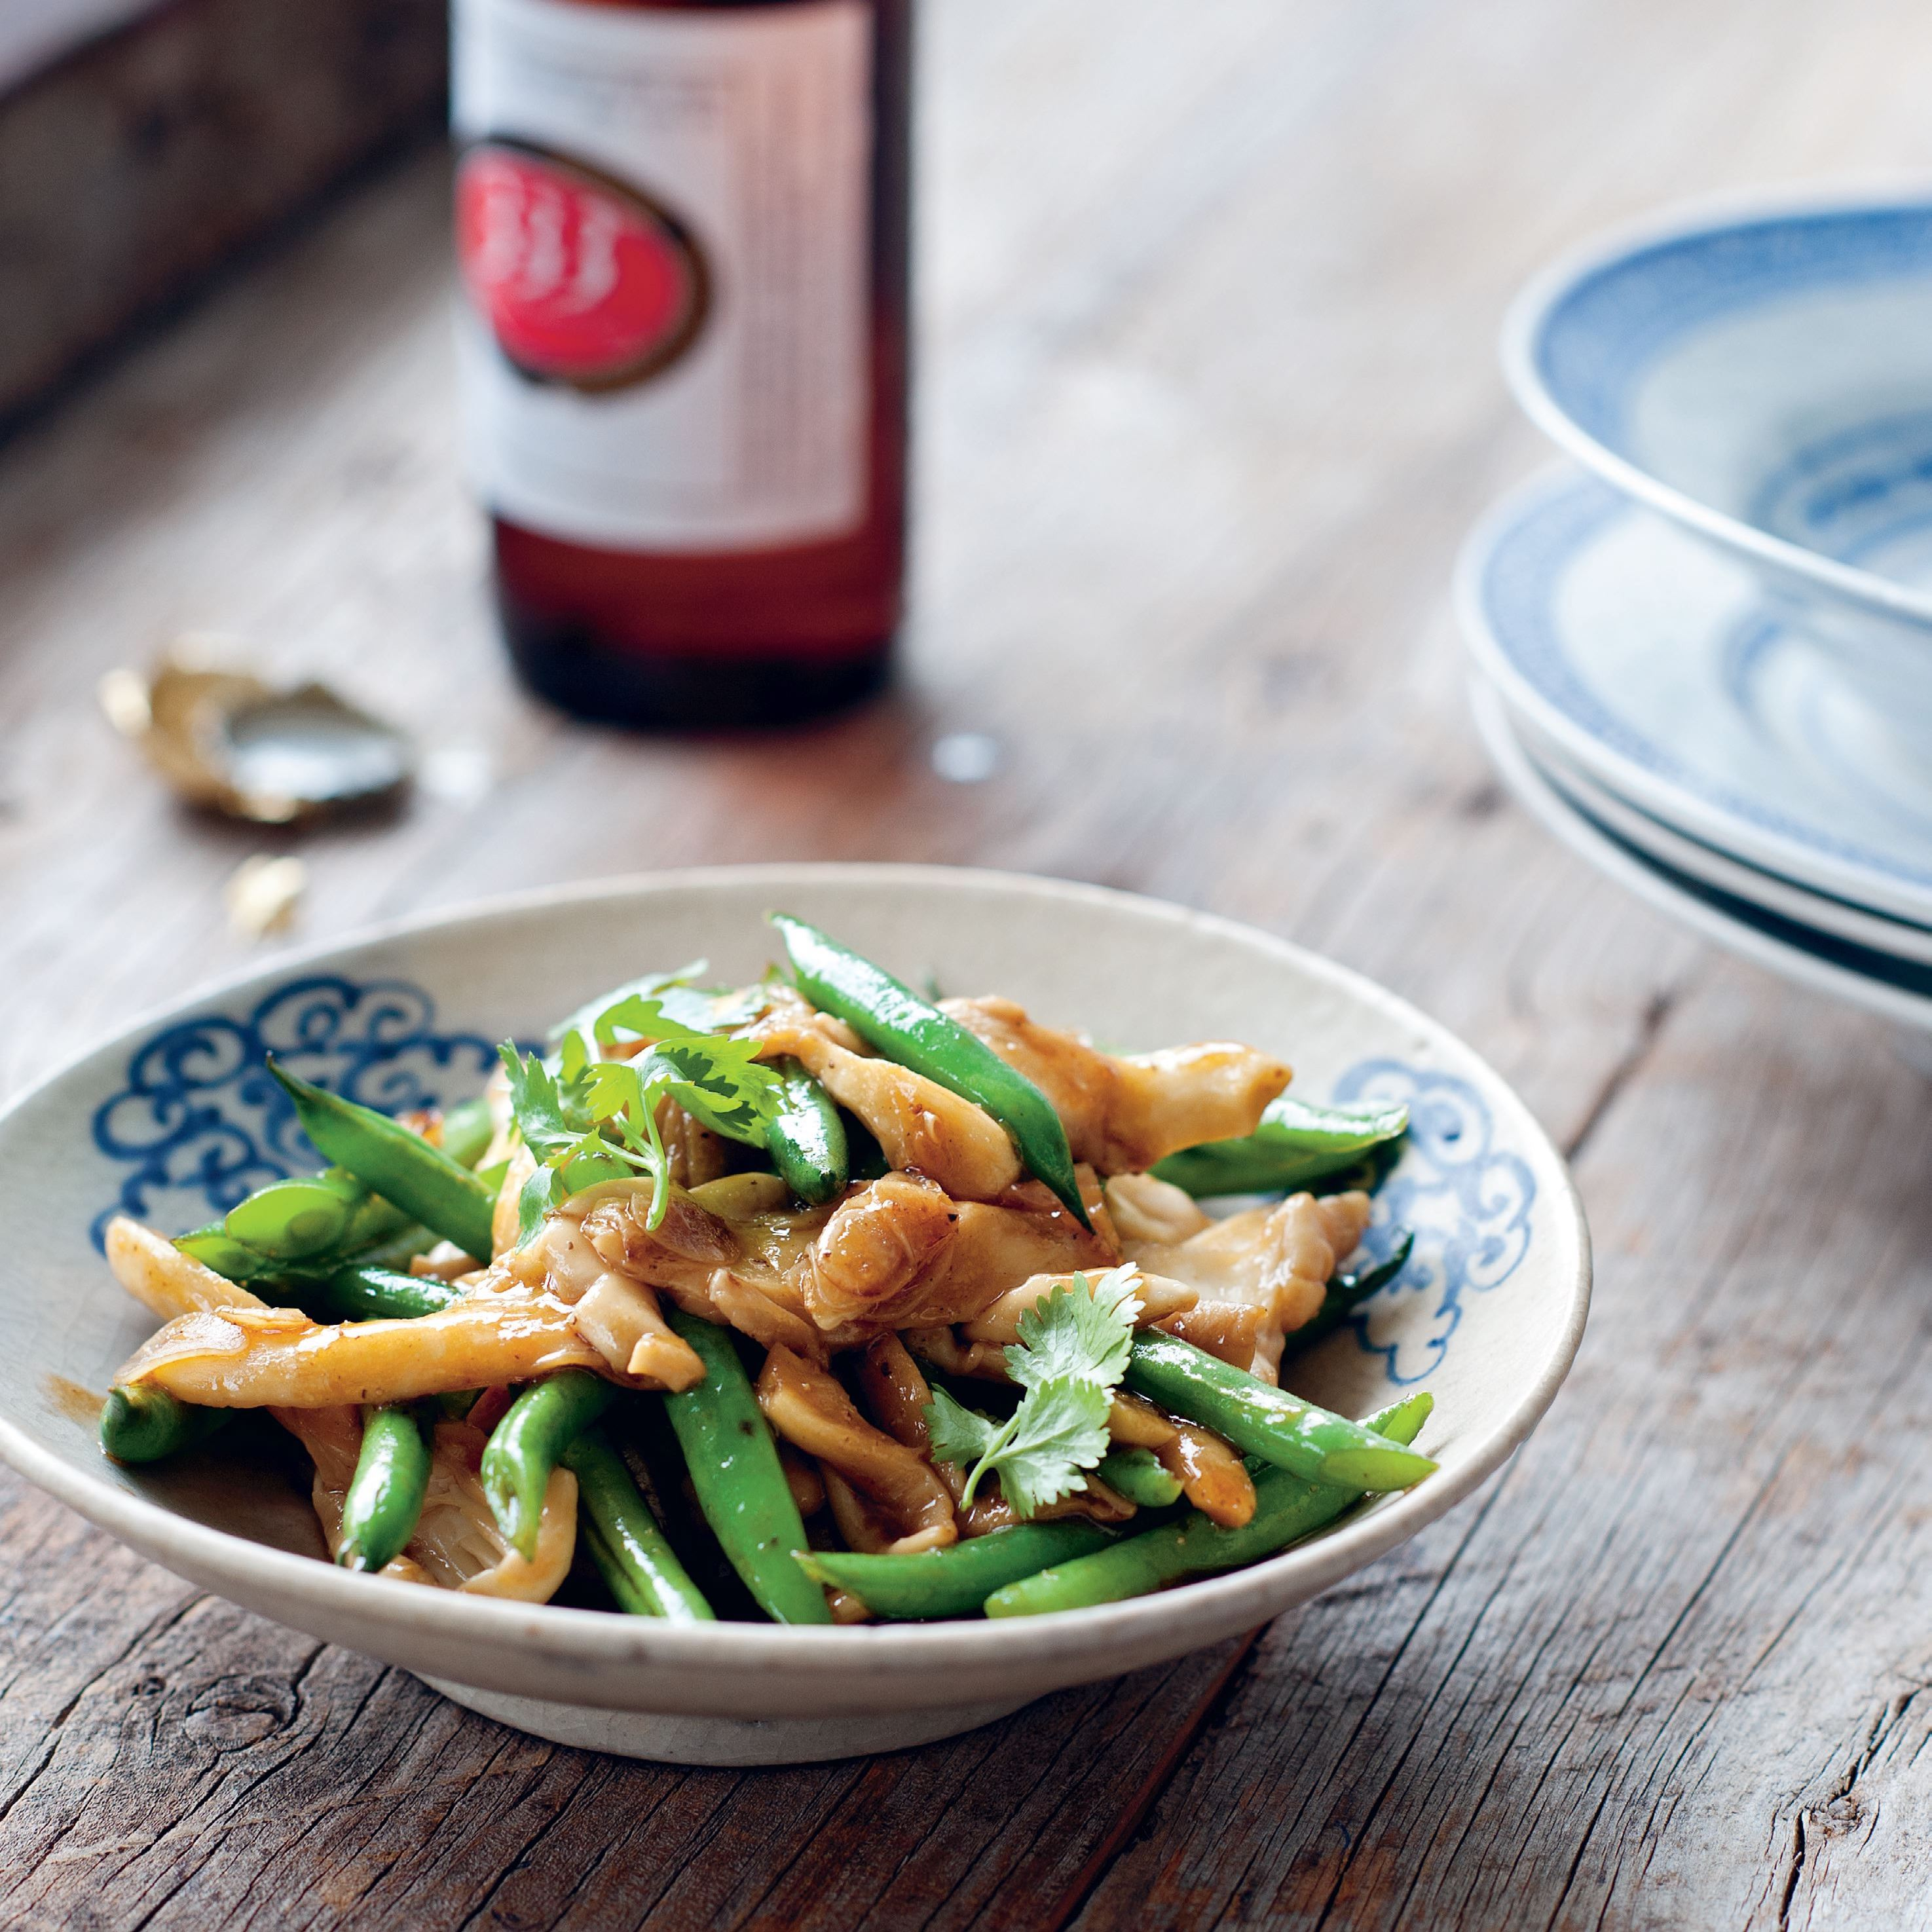 Green beans stir-fried with oyster mushrooms and garlic